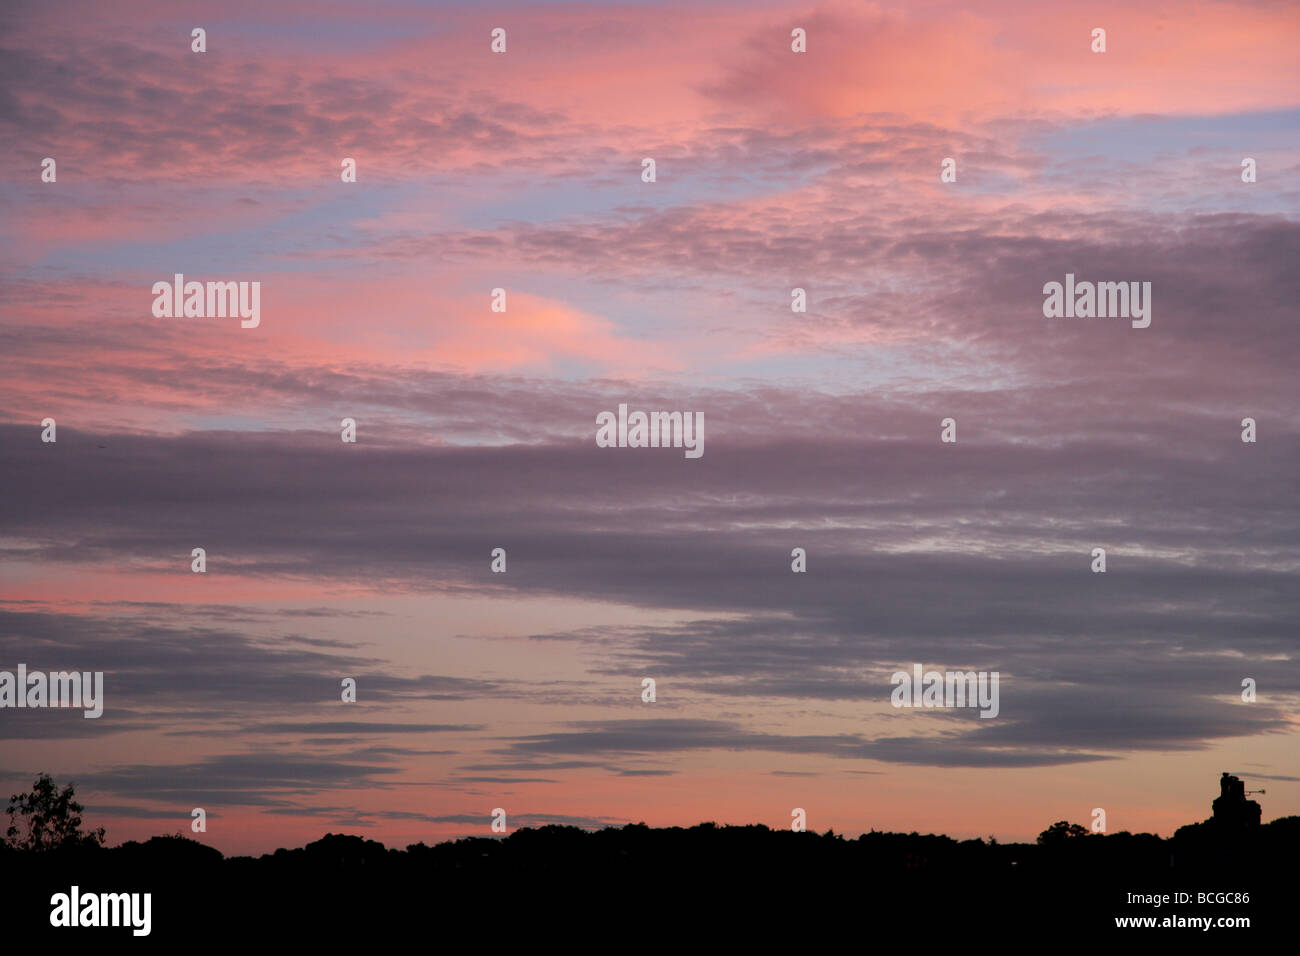 Colourful sunset cirrus clouds in pink and grey - Stock Image